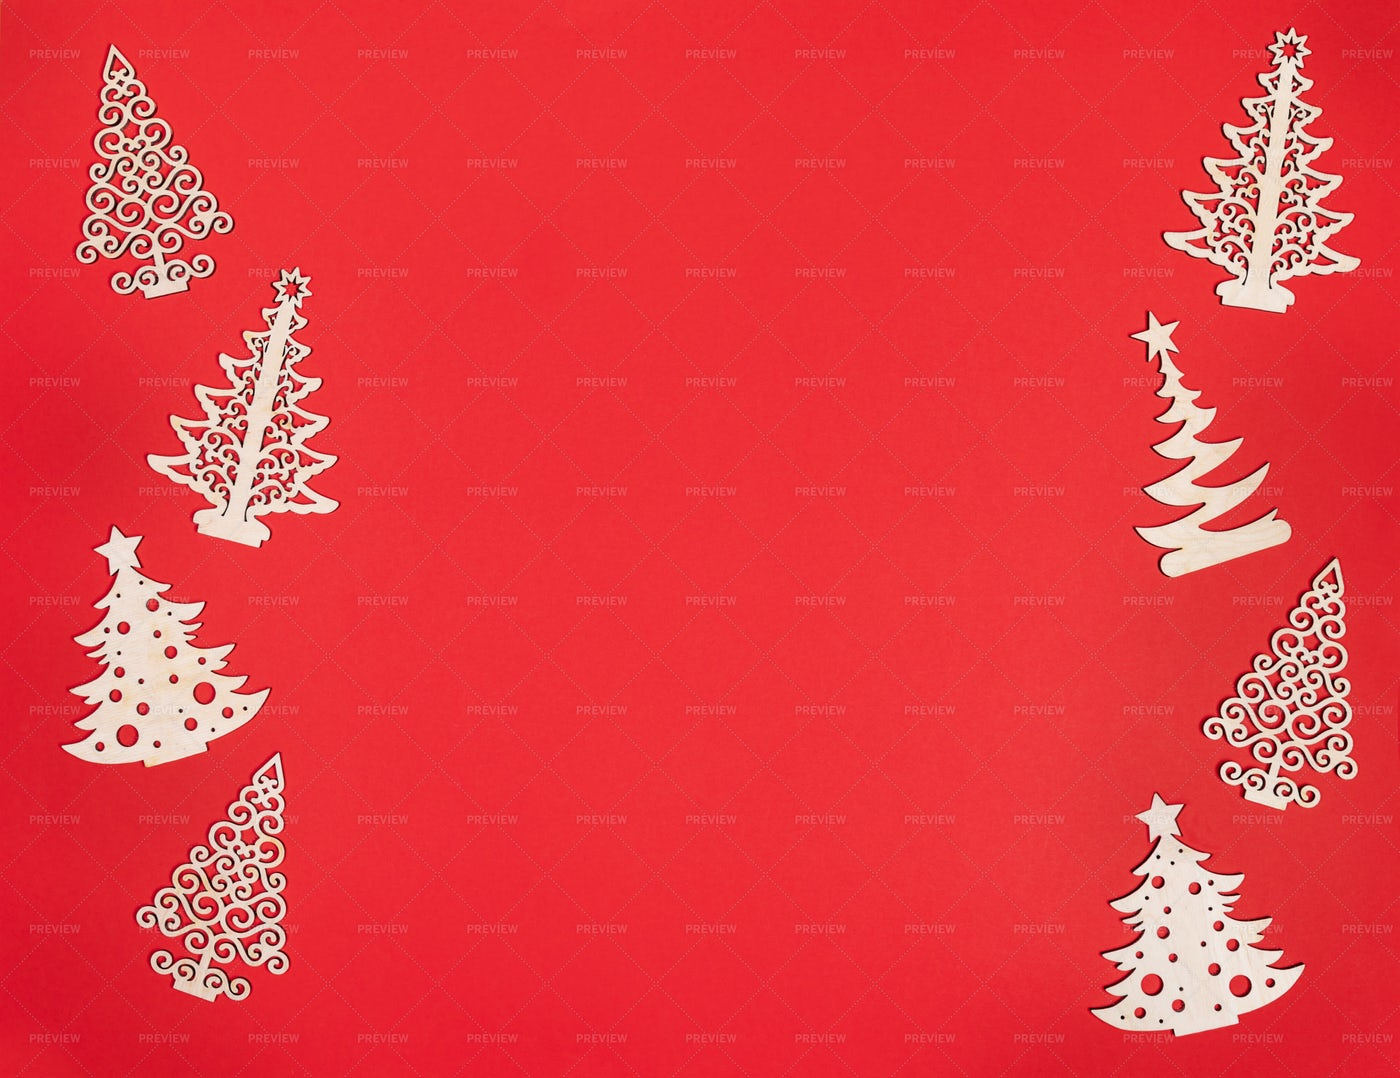 Wooden Christmas Decorations: Stock Photos